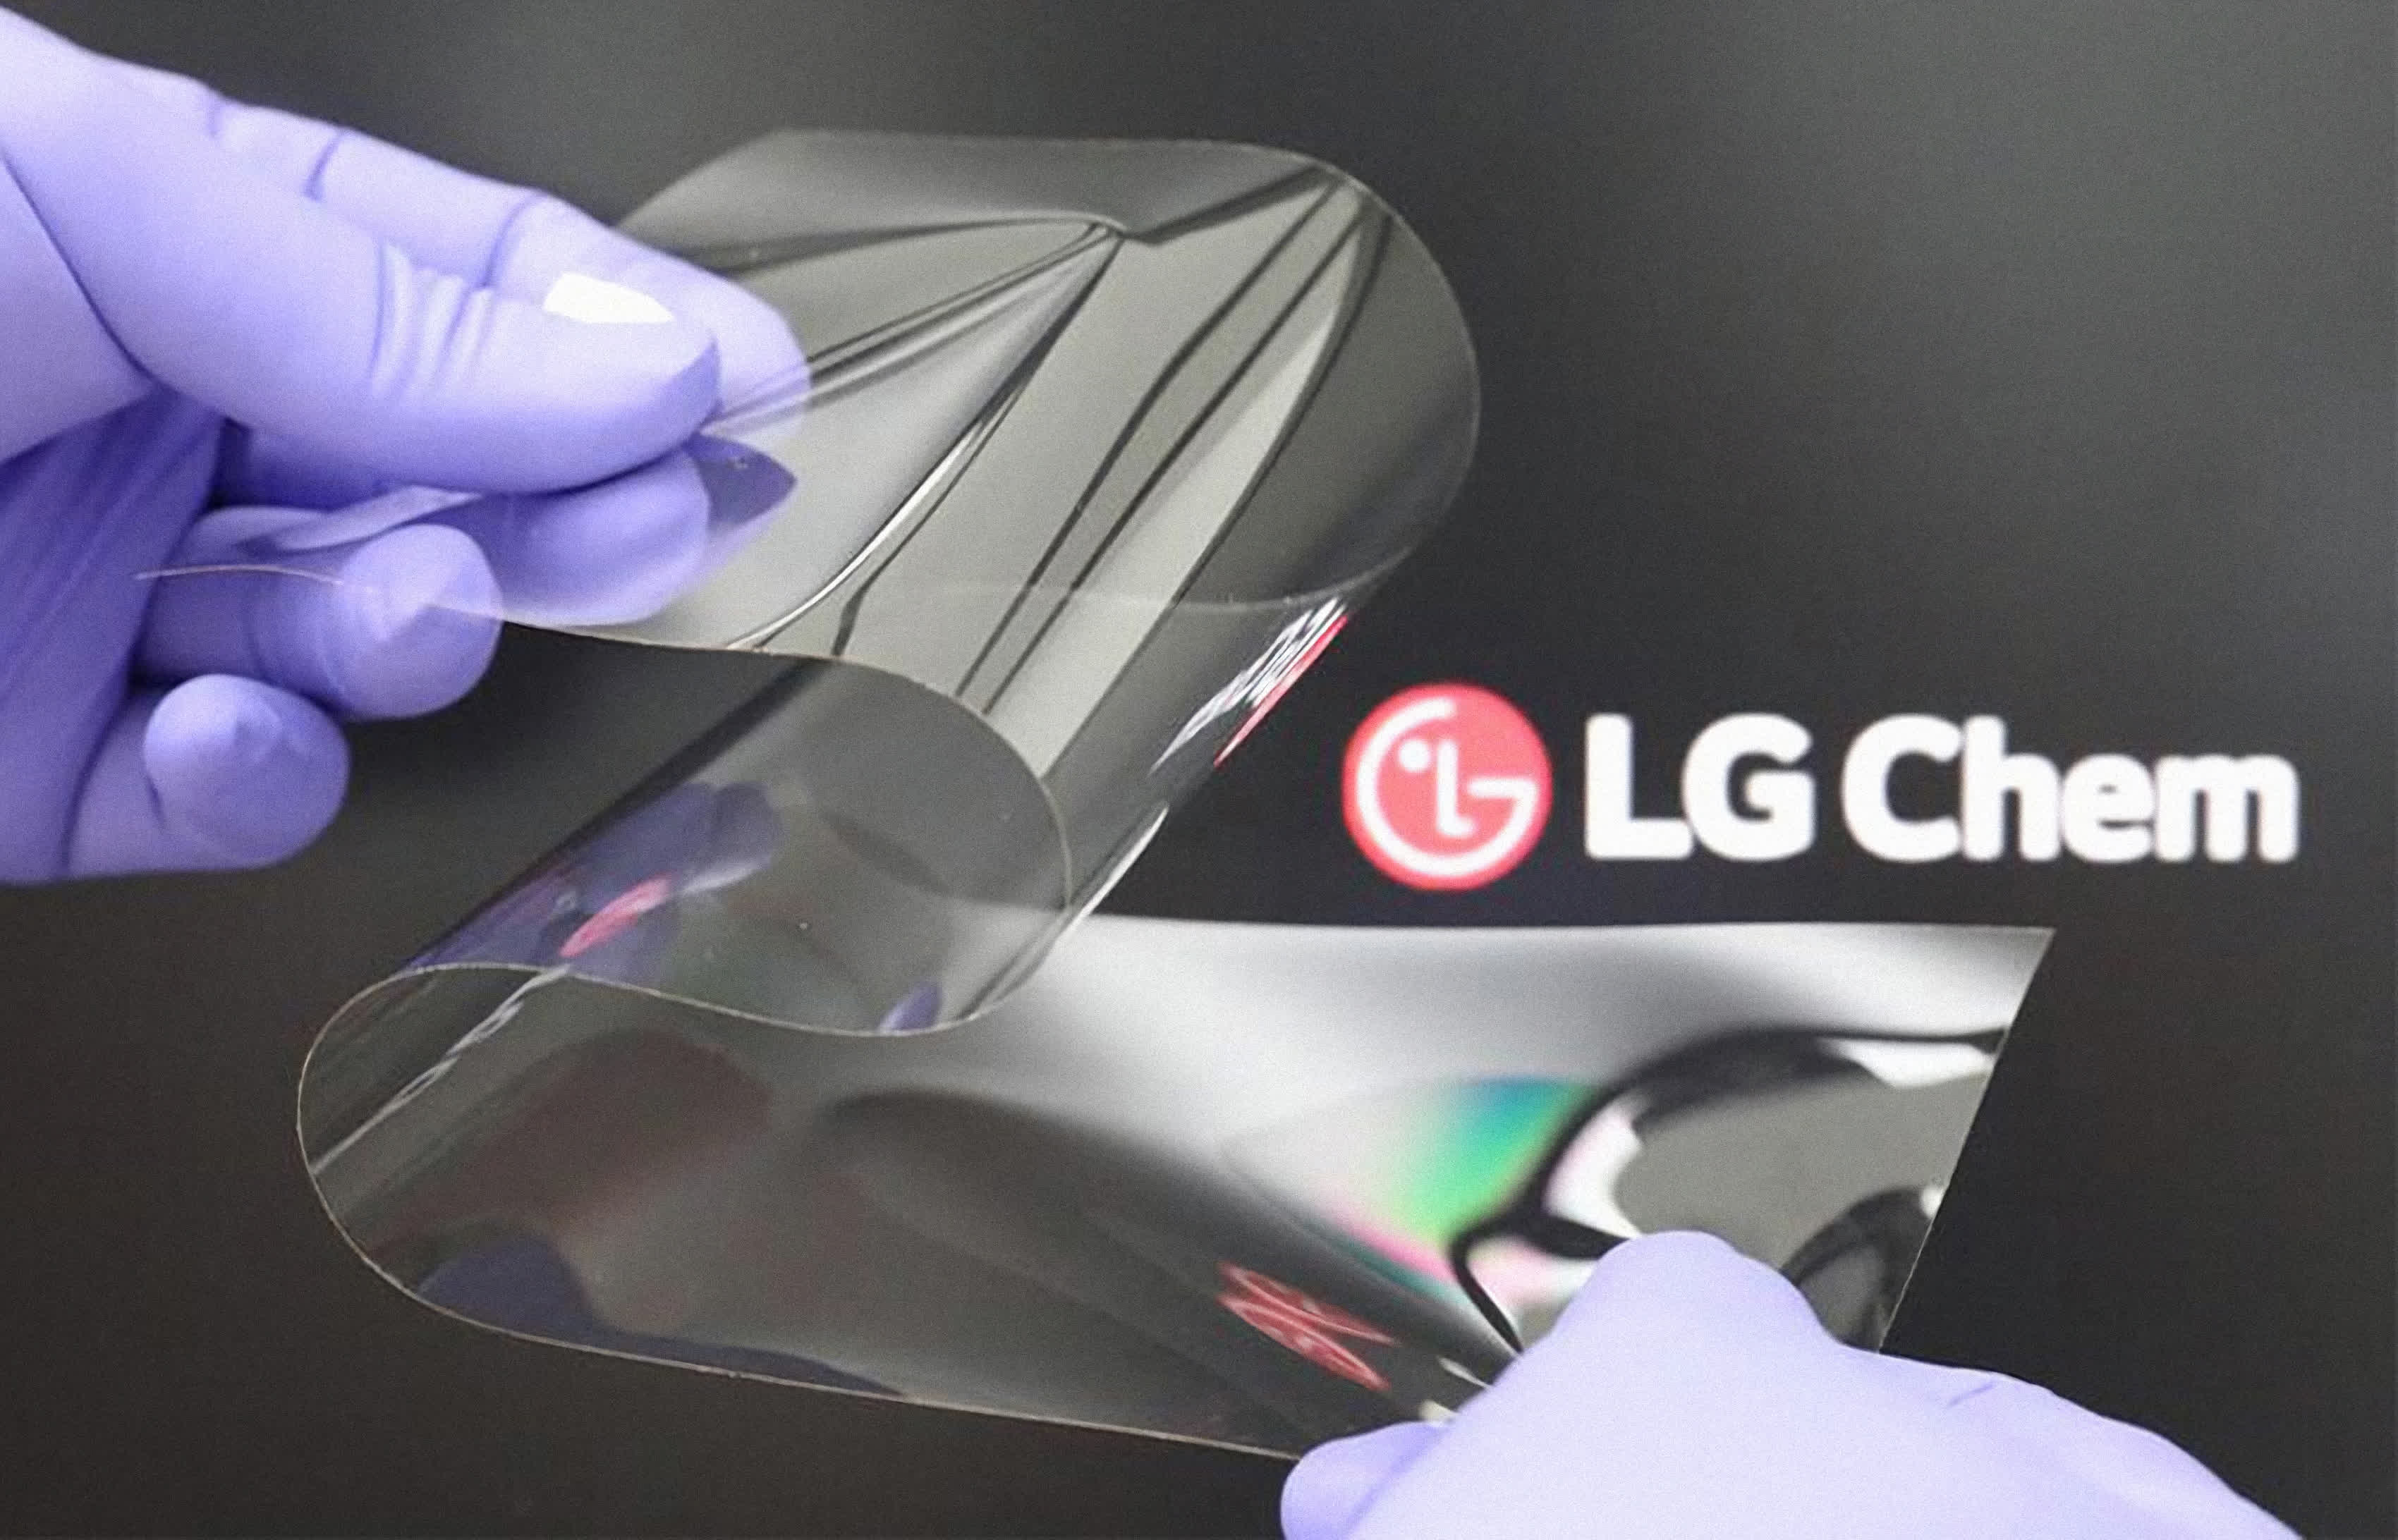 LG's new foldable display tech reduces creases but is as hard as tempered glass